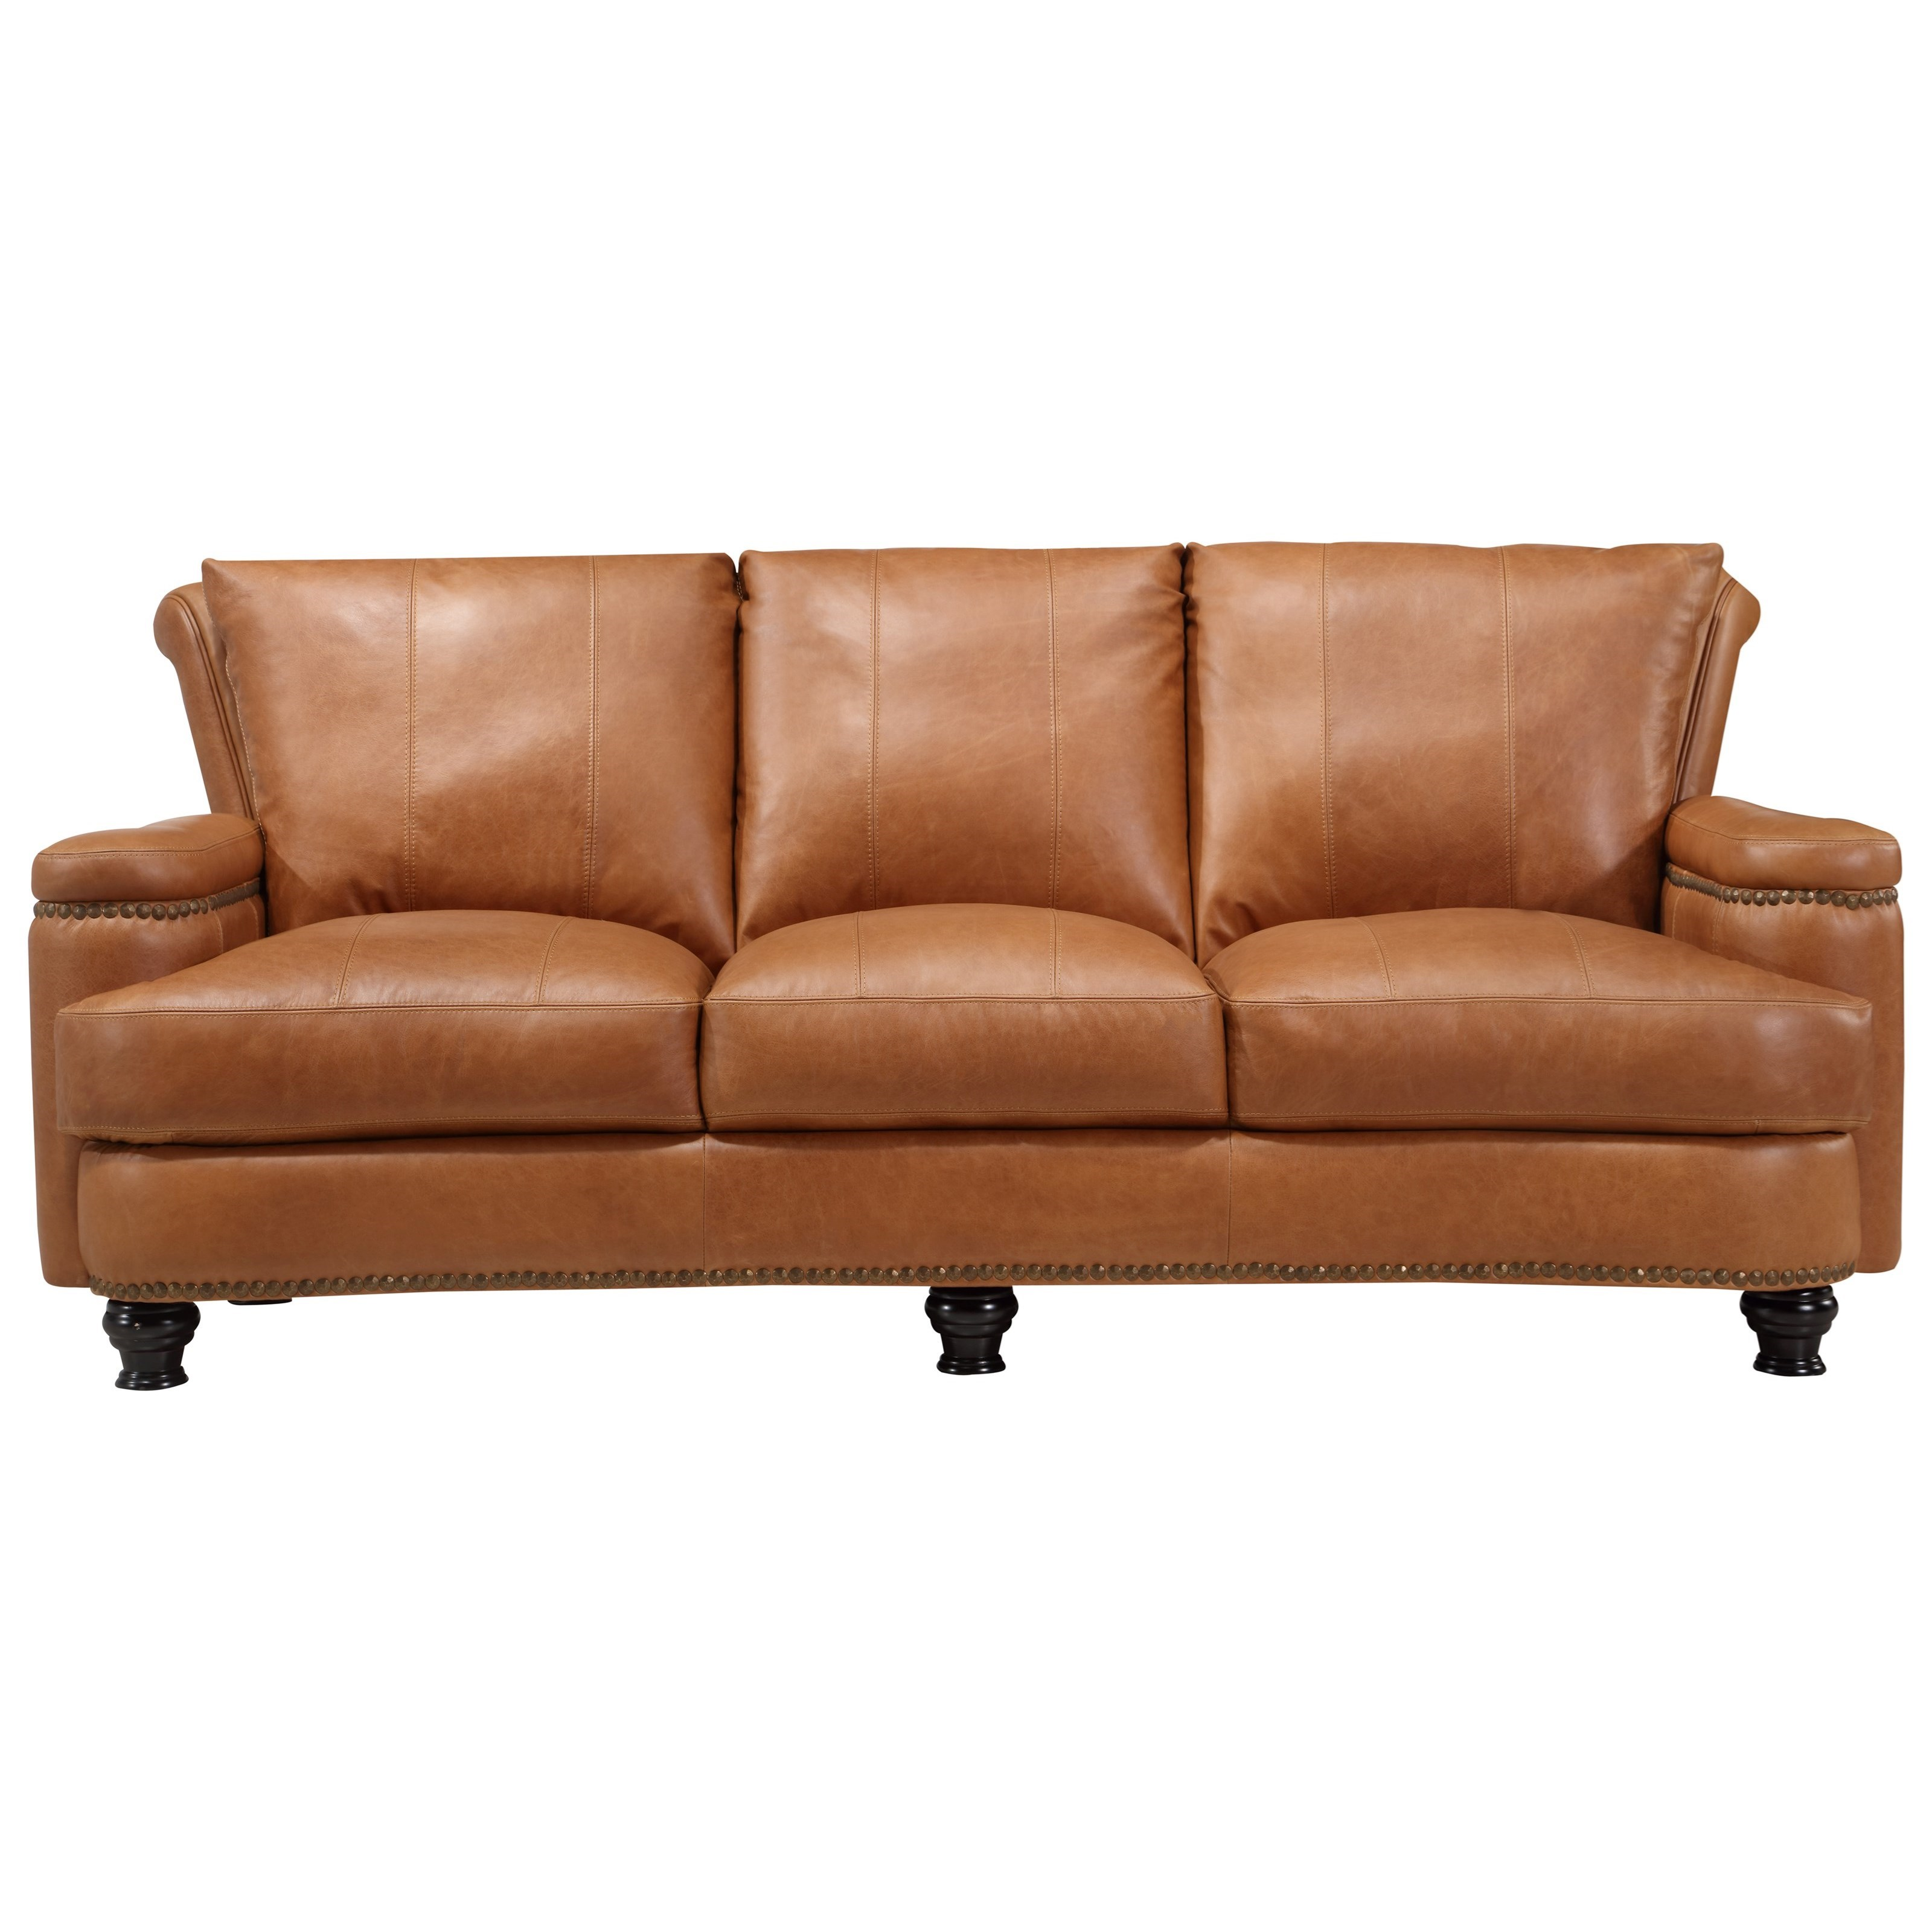 Leather Italia USA Hutton Leather Sofa - Item Number: 2493-sofa